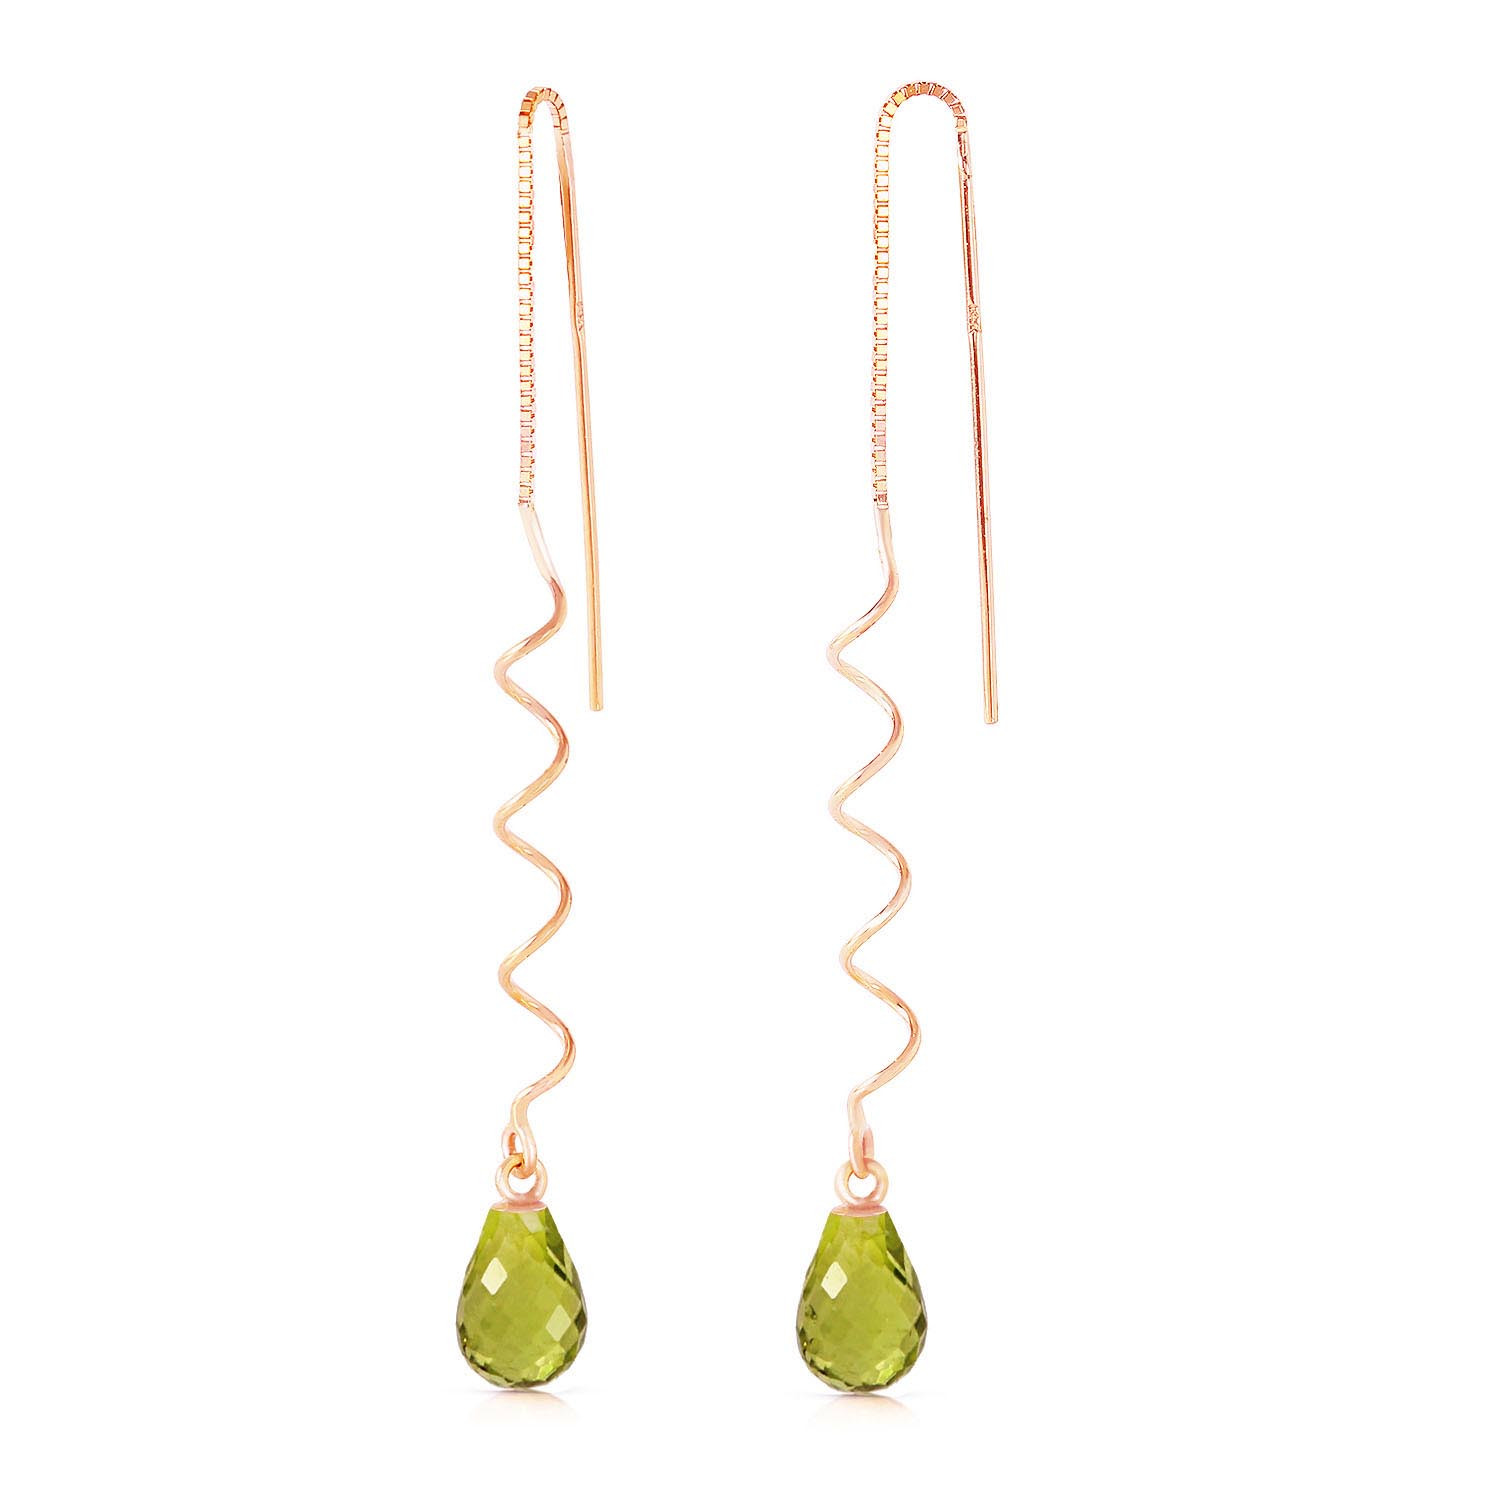 Peridot Spiral Scintilla Earrings 3.3 ctw in 9ct Rose Gold